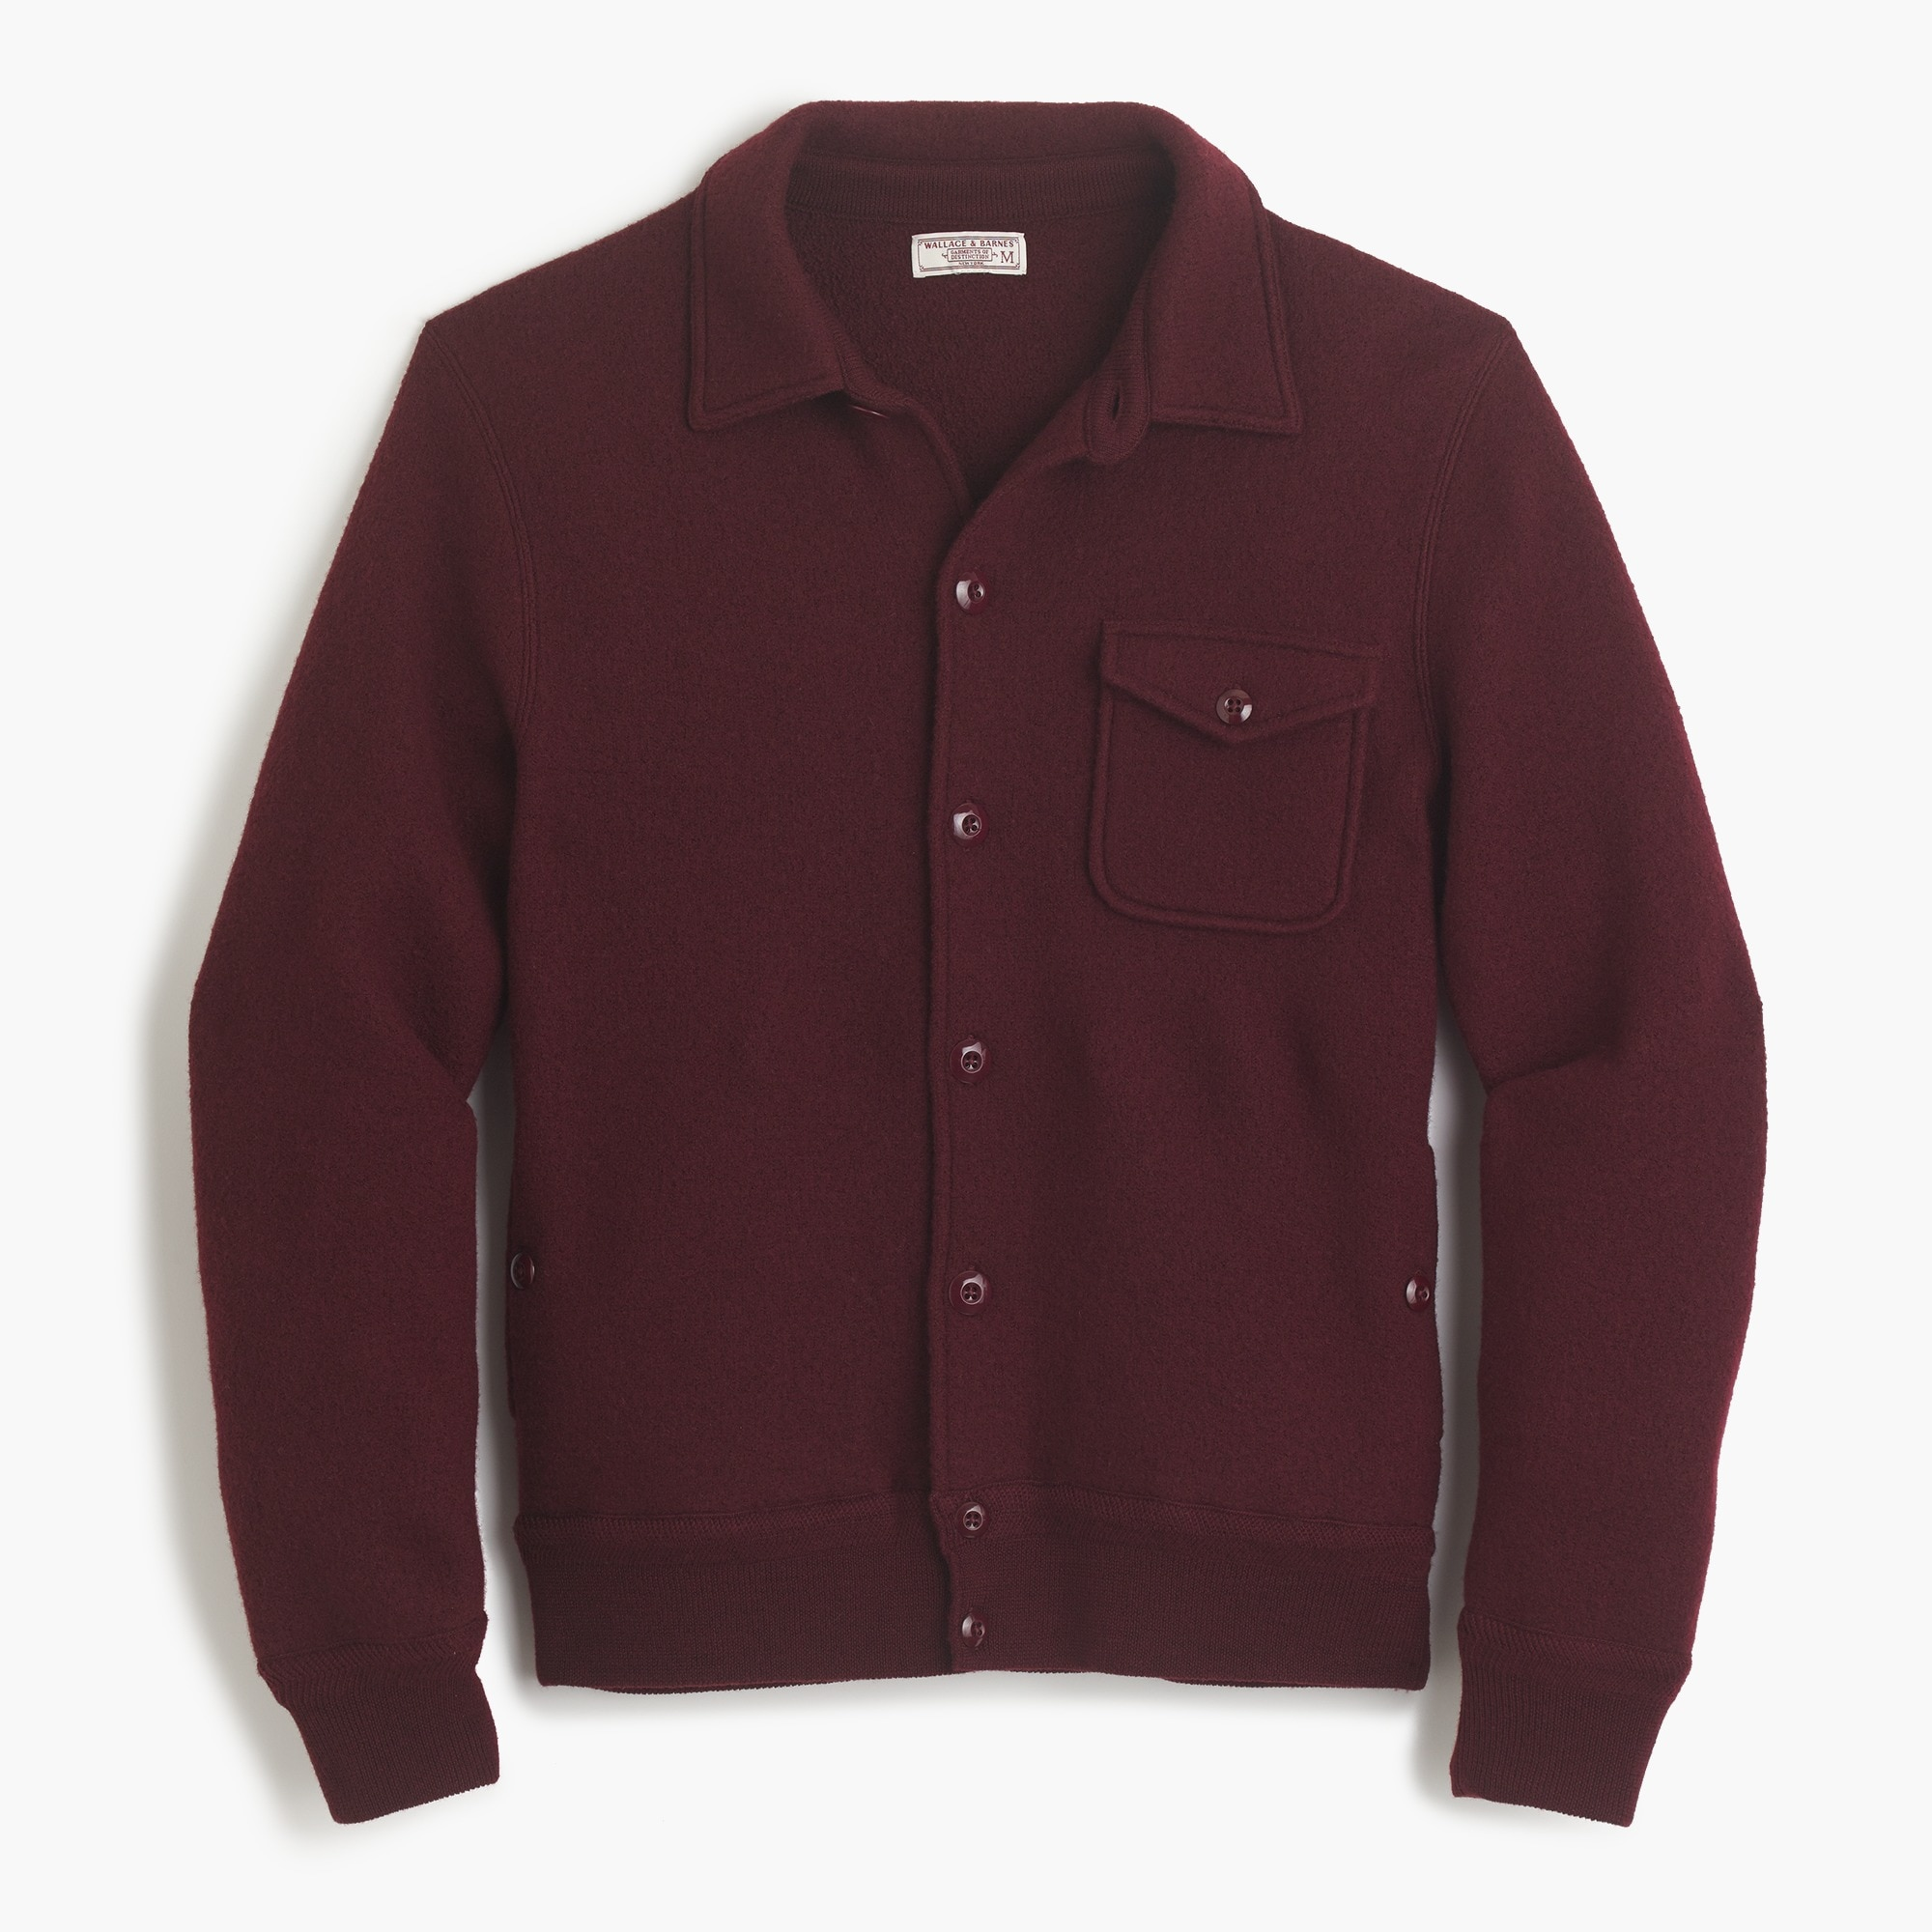 Wallace & Barnes sweater-jacket in Italian merino wool